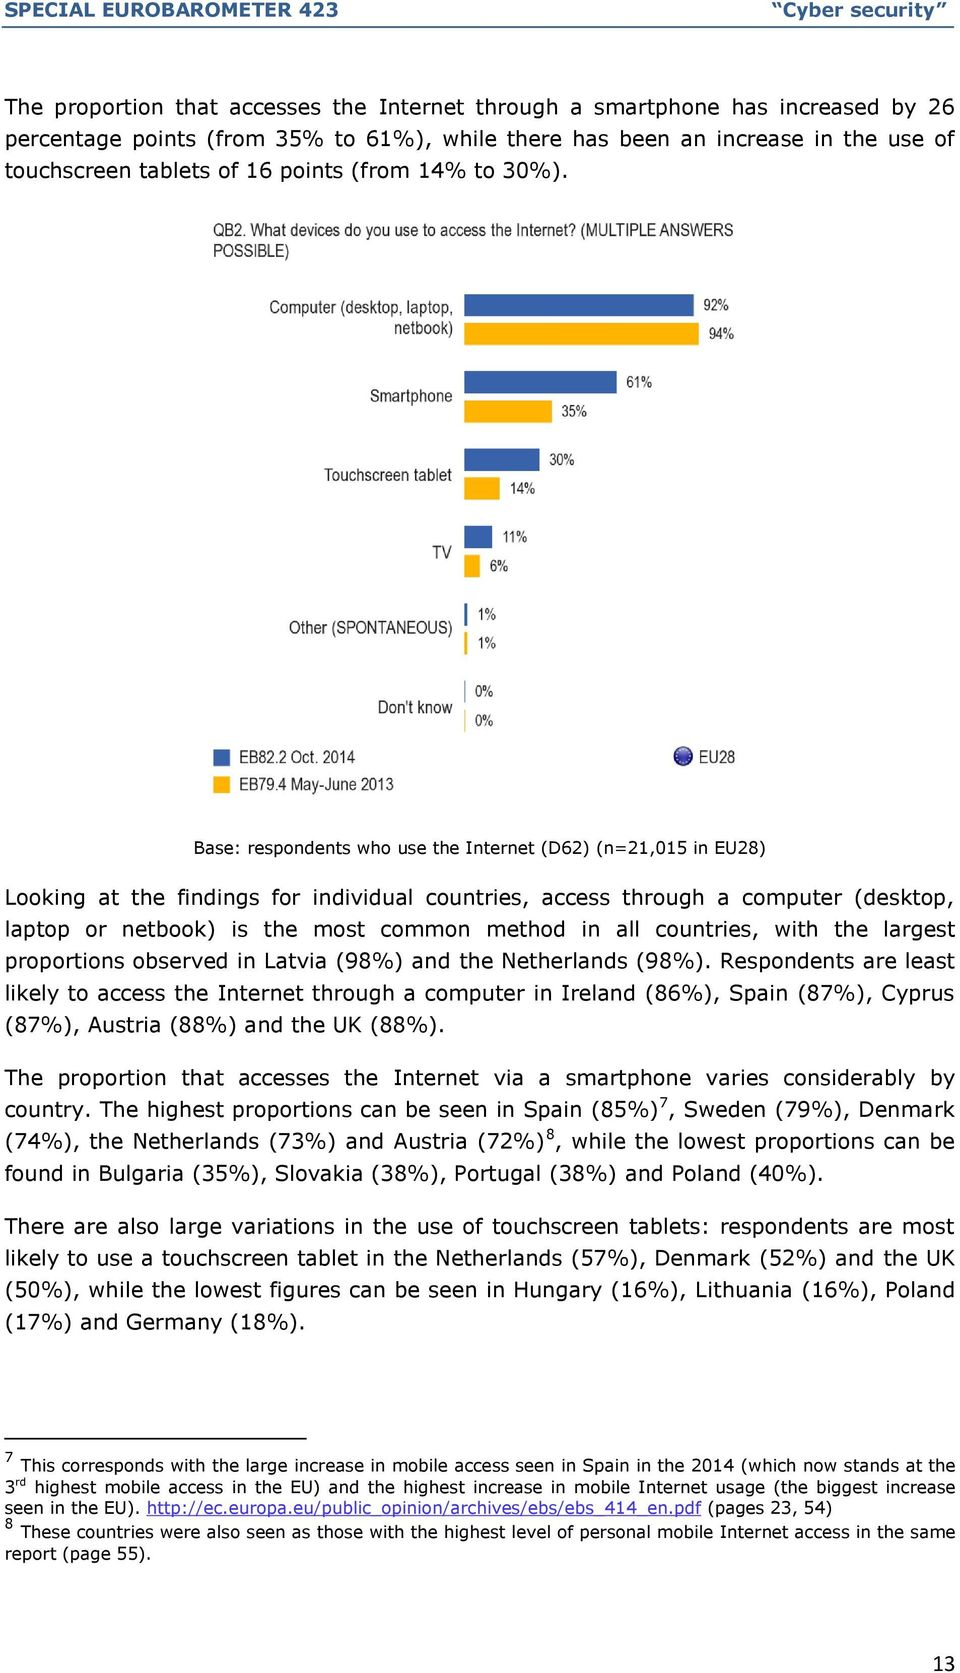 Base: respondents who use the Internet (D62) (n=21,015 in EU28) Looking at the findings for individual countries, access through a computer (desktop, laptop or netbook) is the most common method in